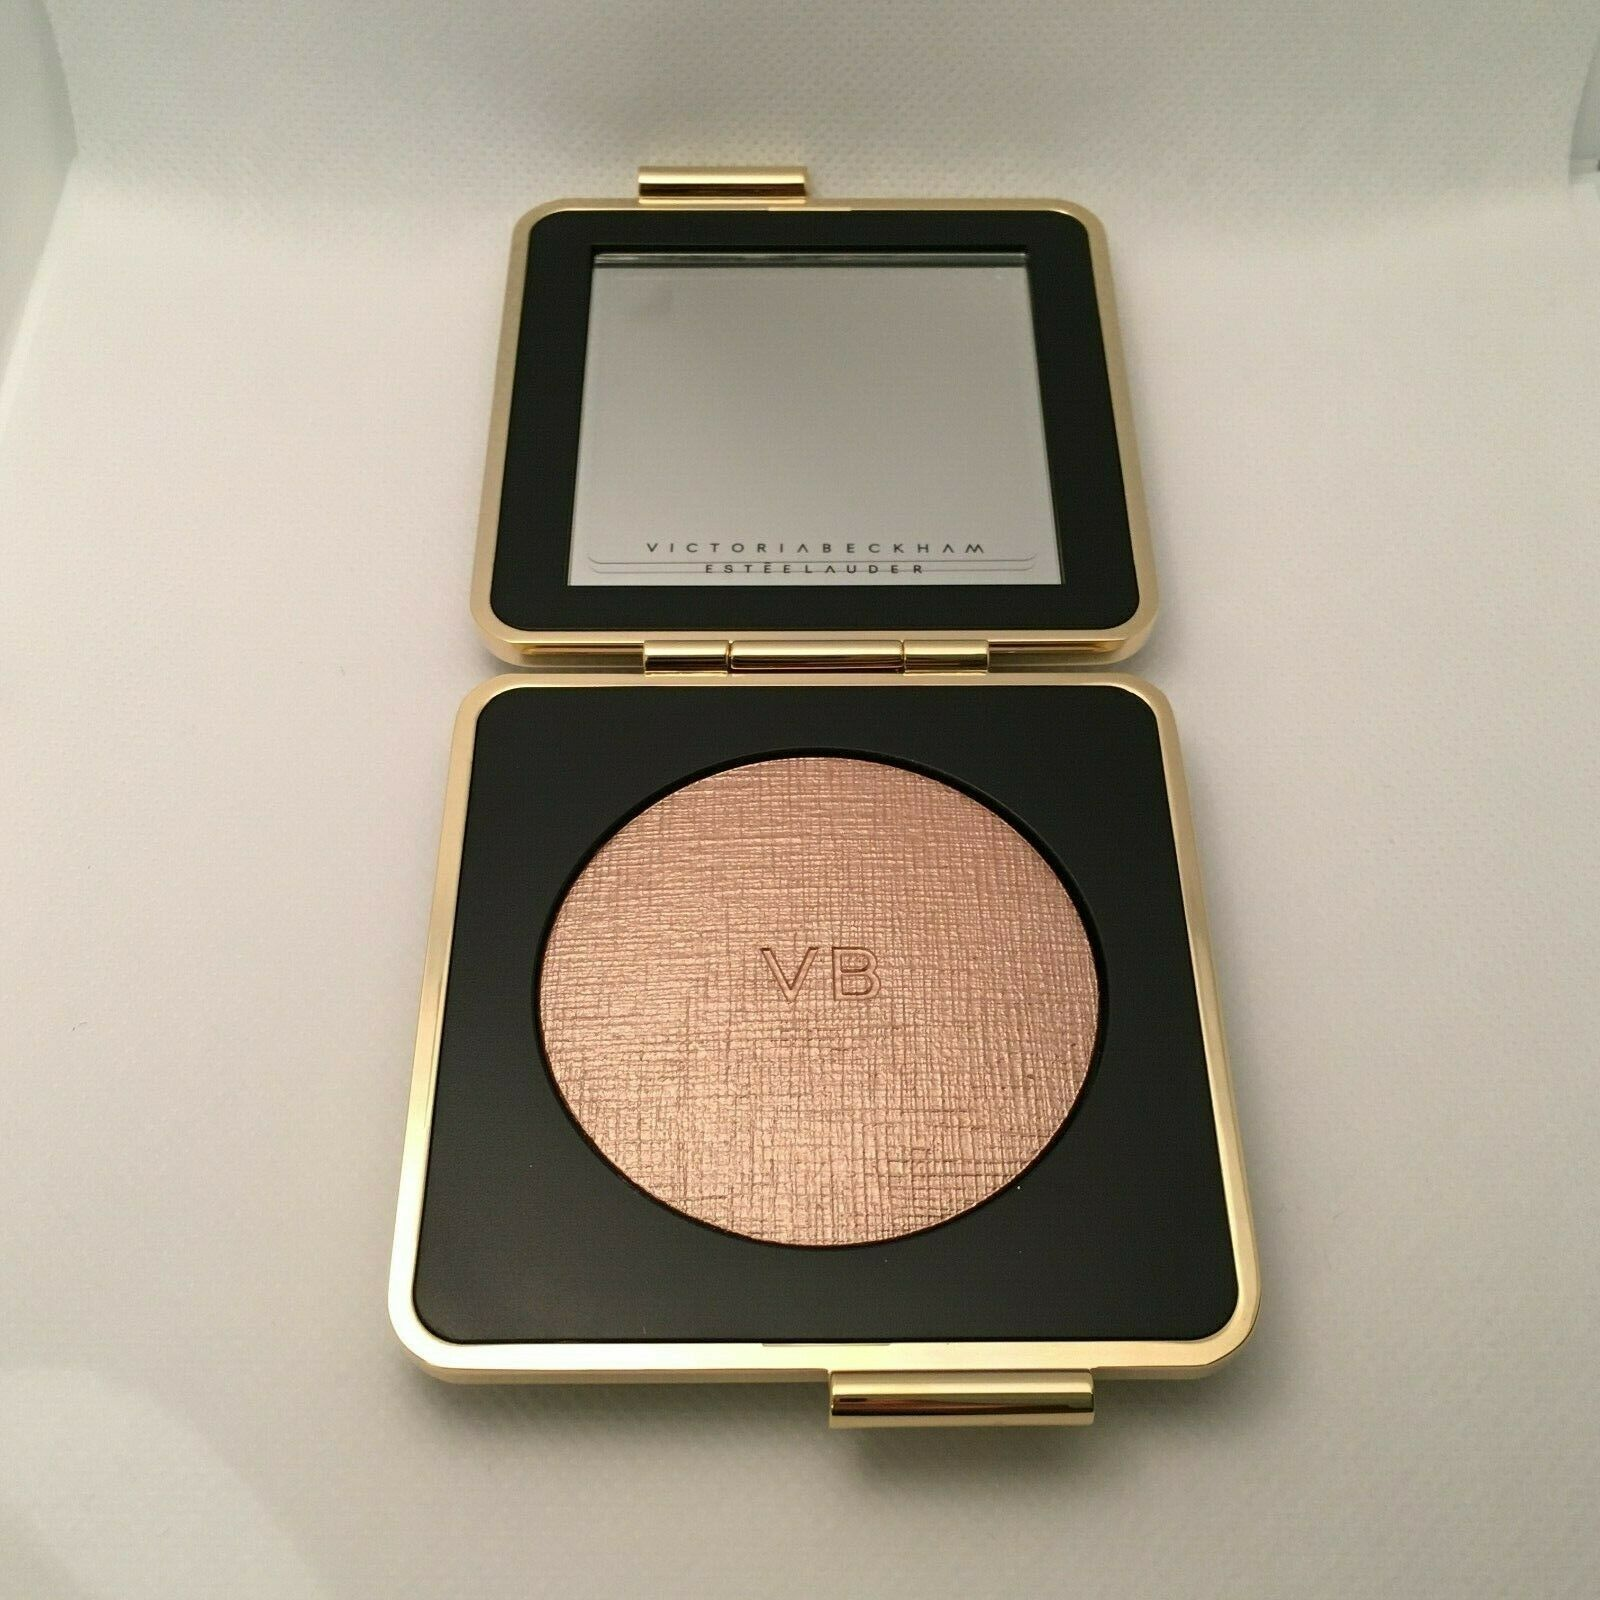 Primary image for Estee Lauder Victoria Beckham Highlighter - 01 Modern Mercury